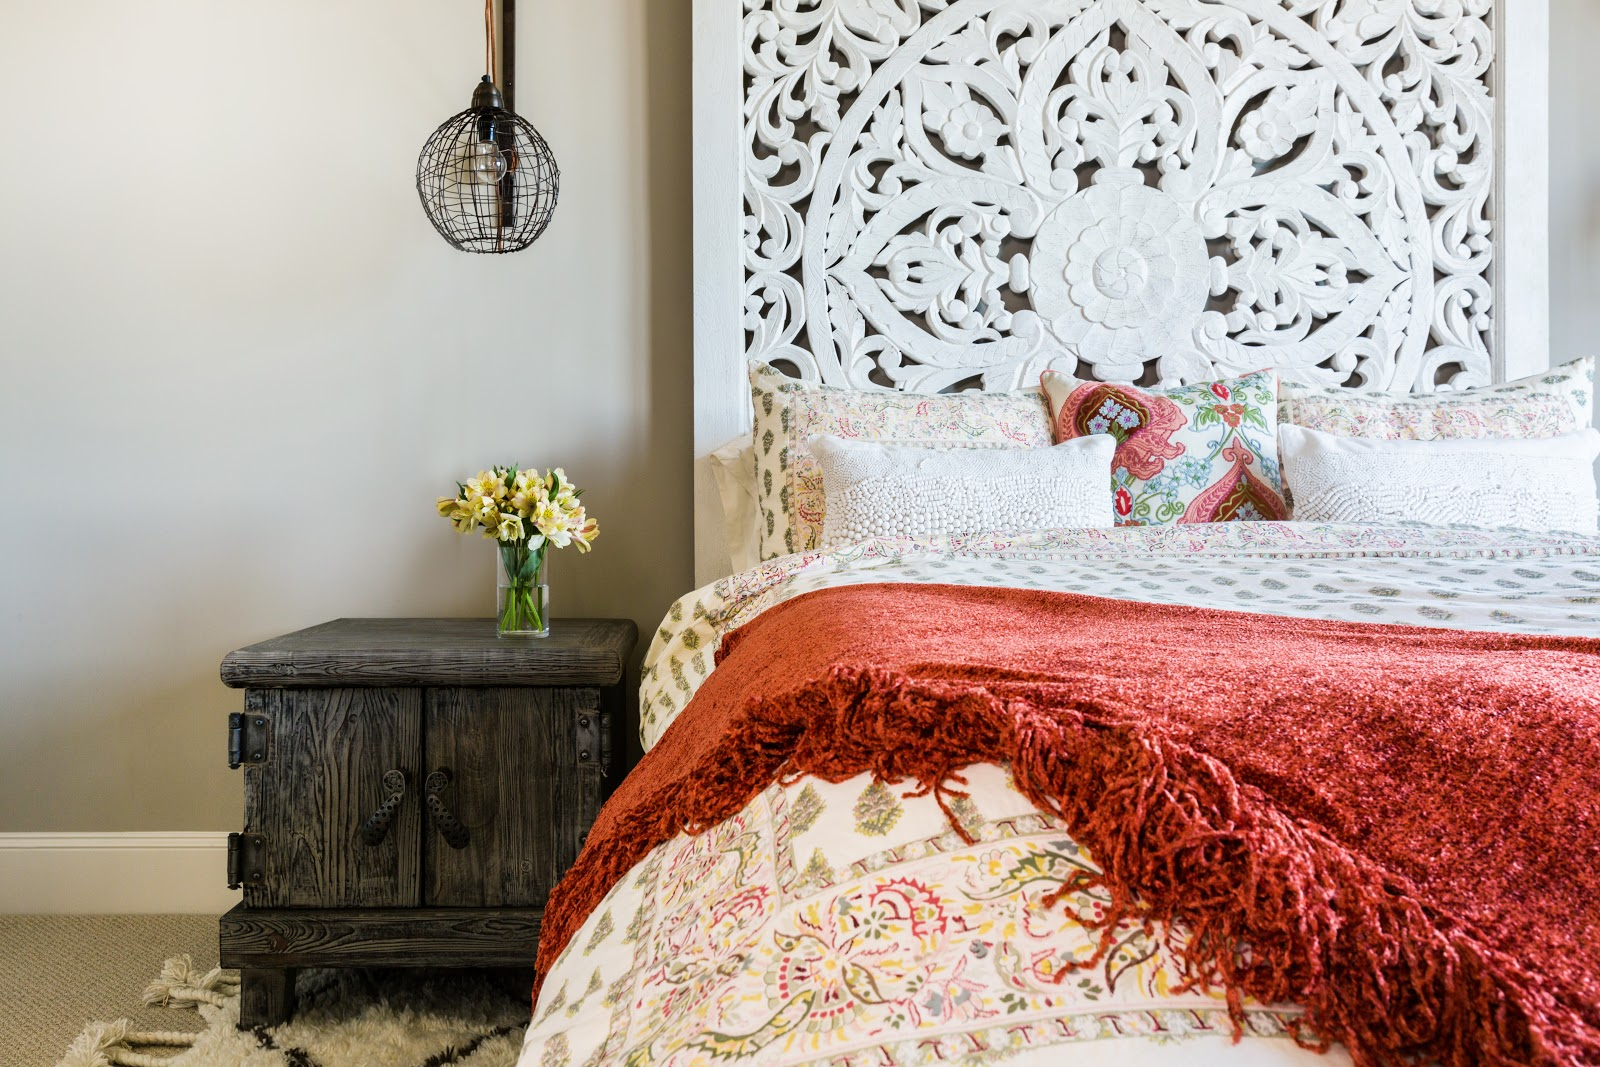 Intricate Anthropologie wooden headboard with India vibe - Laura U Interior Design